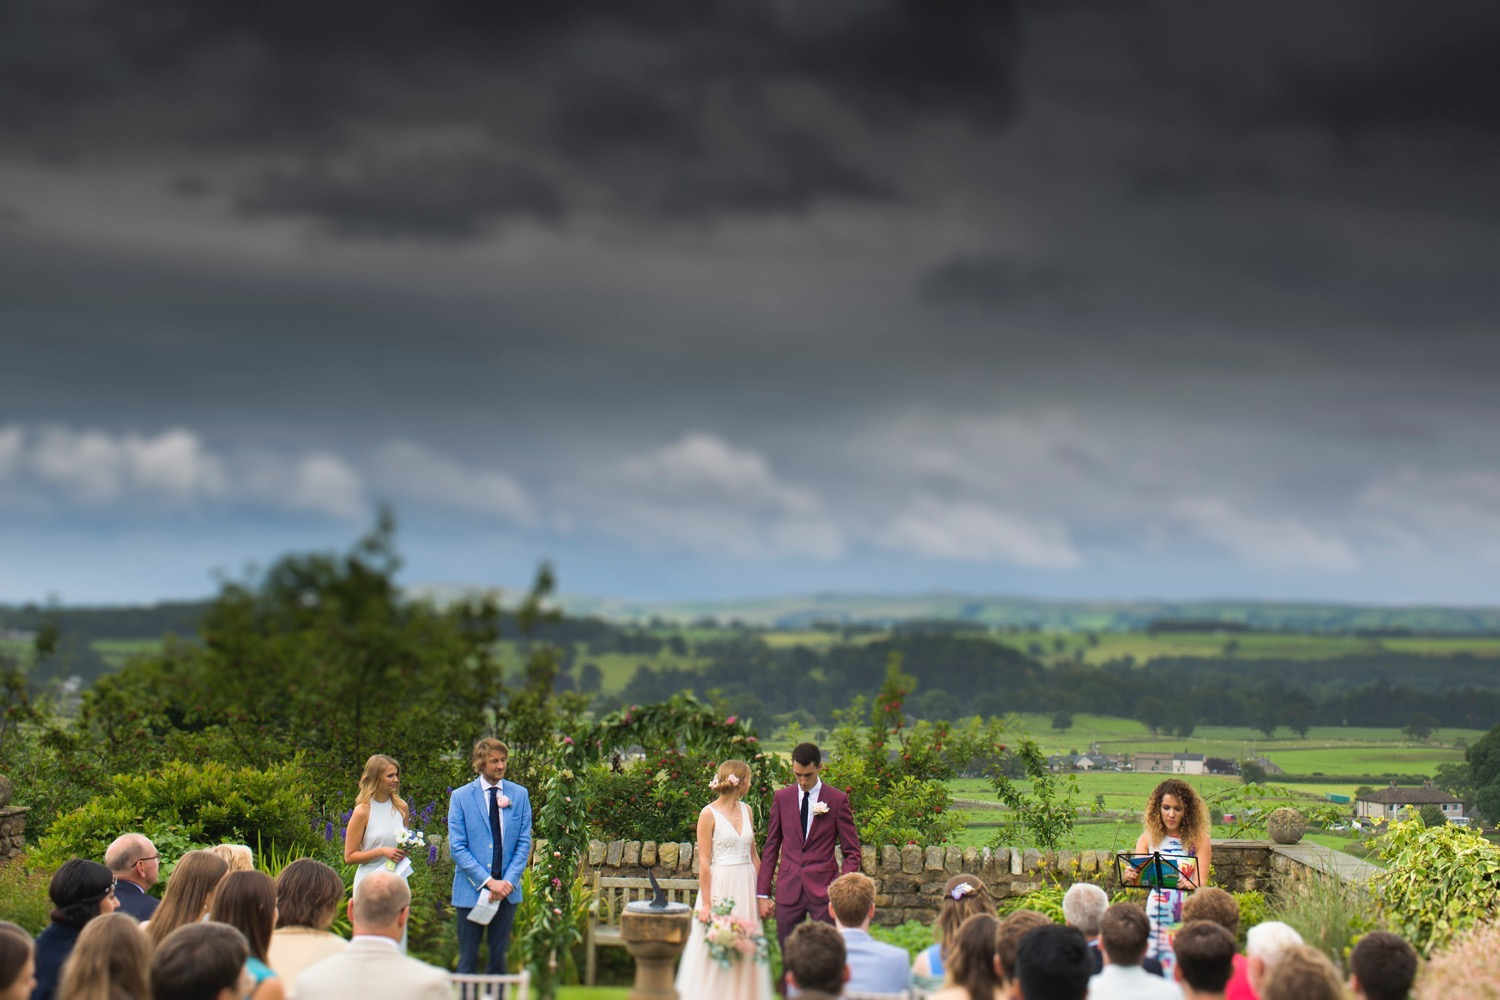 lancashire-wedding-photorapher-35.JPG